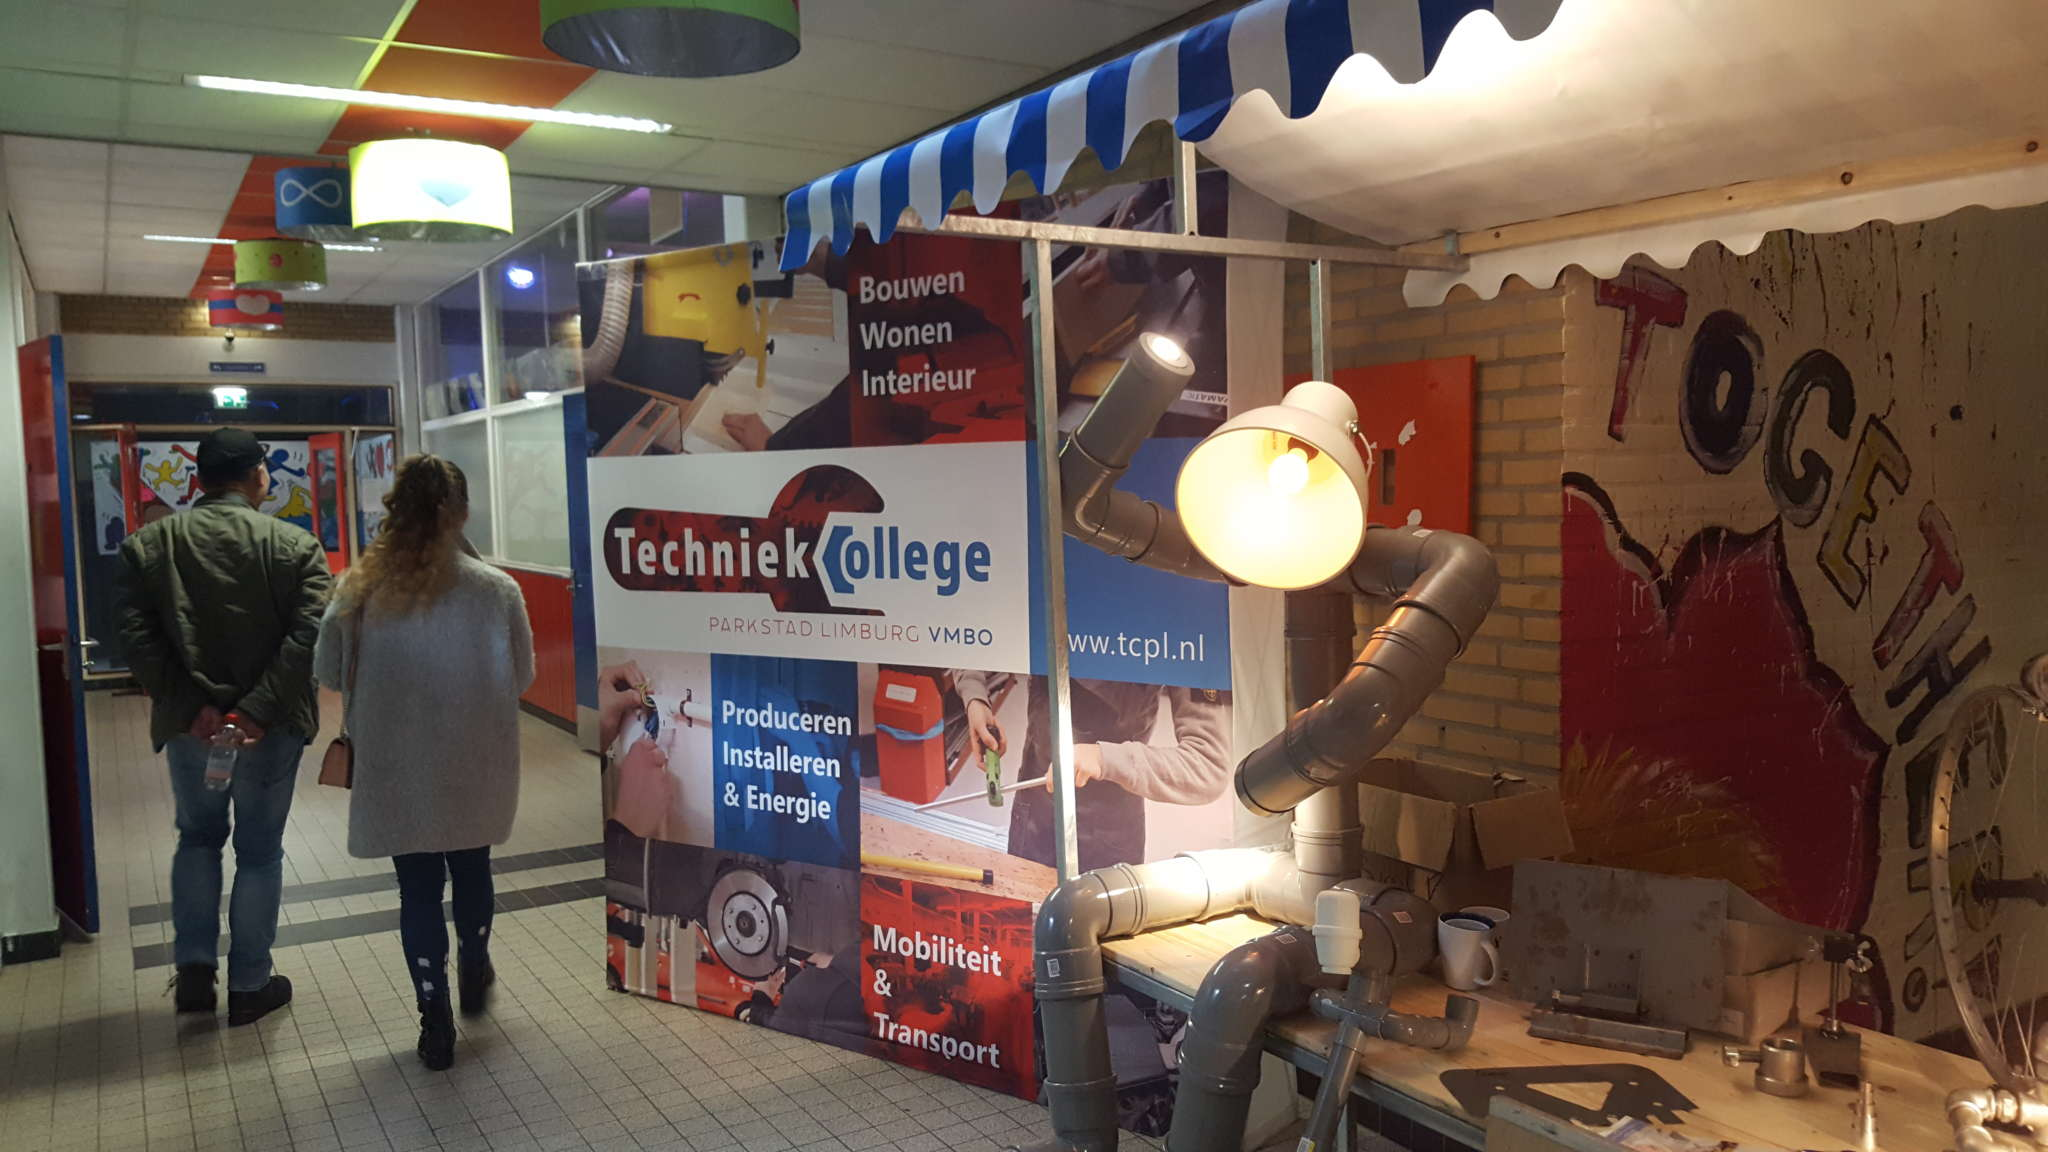 Techniek College on tour